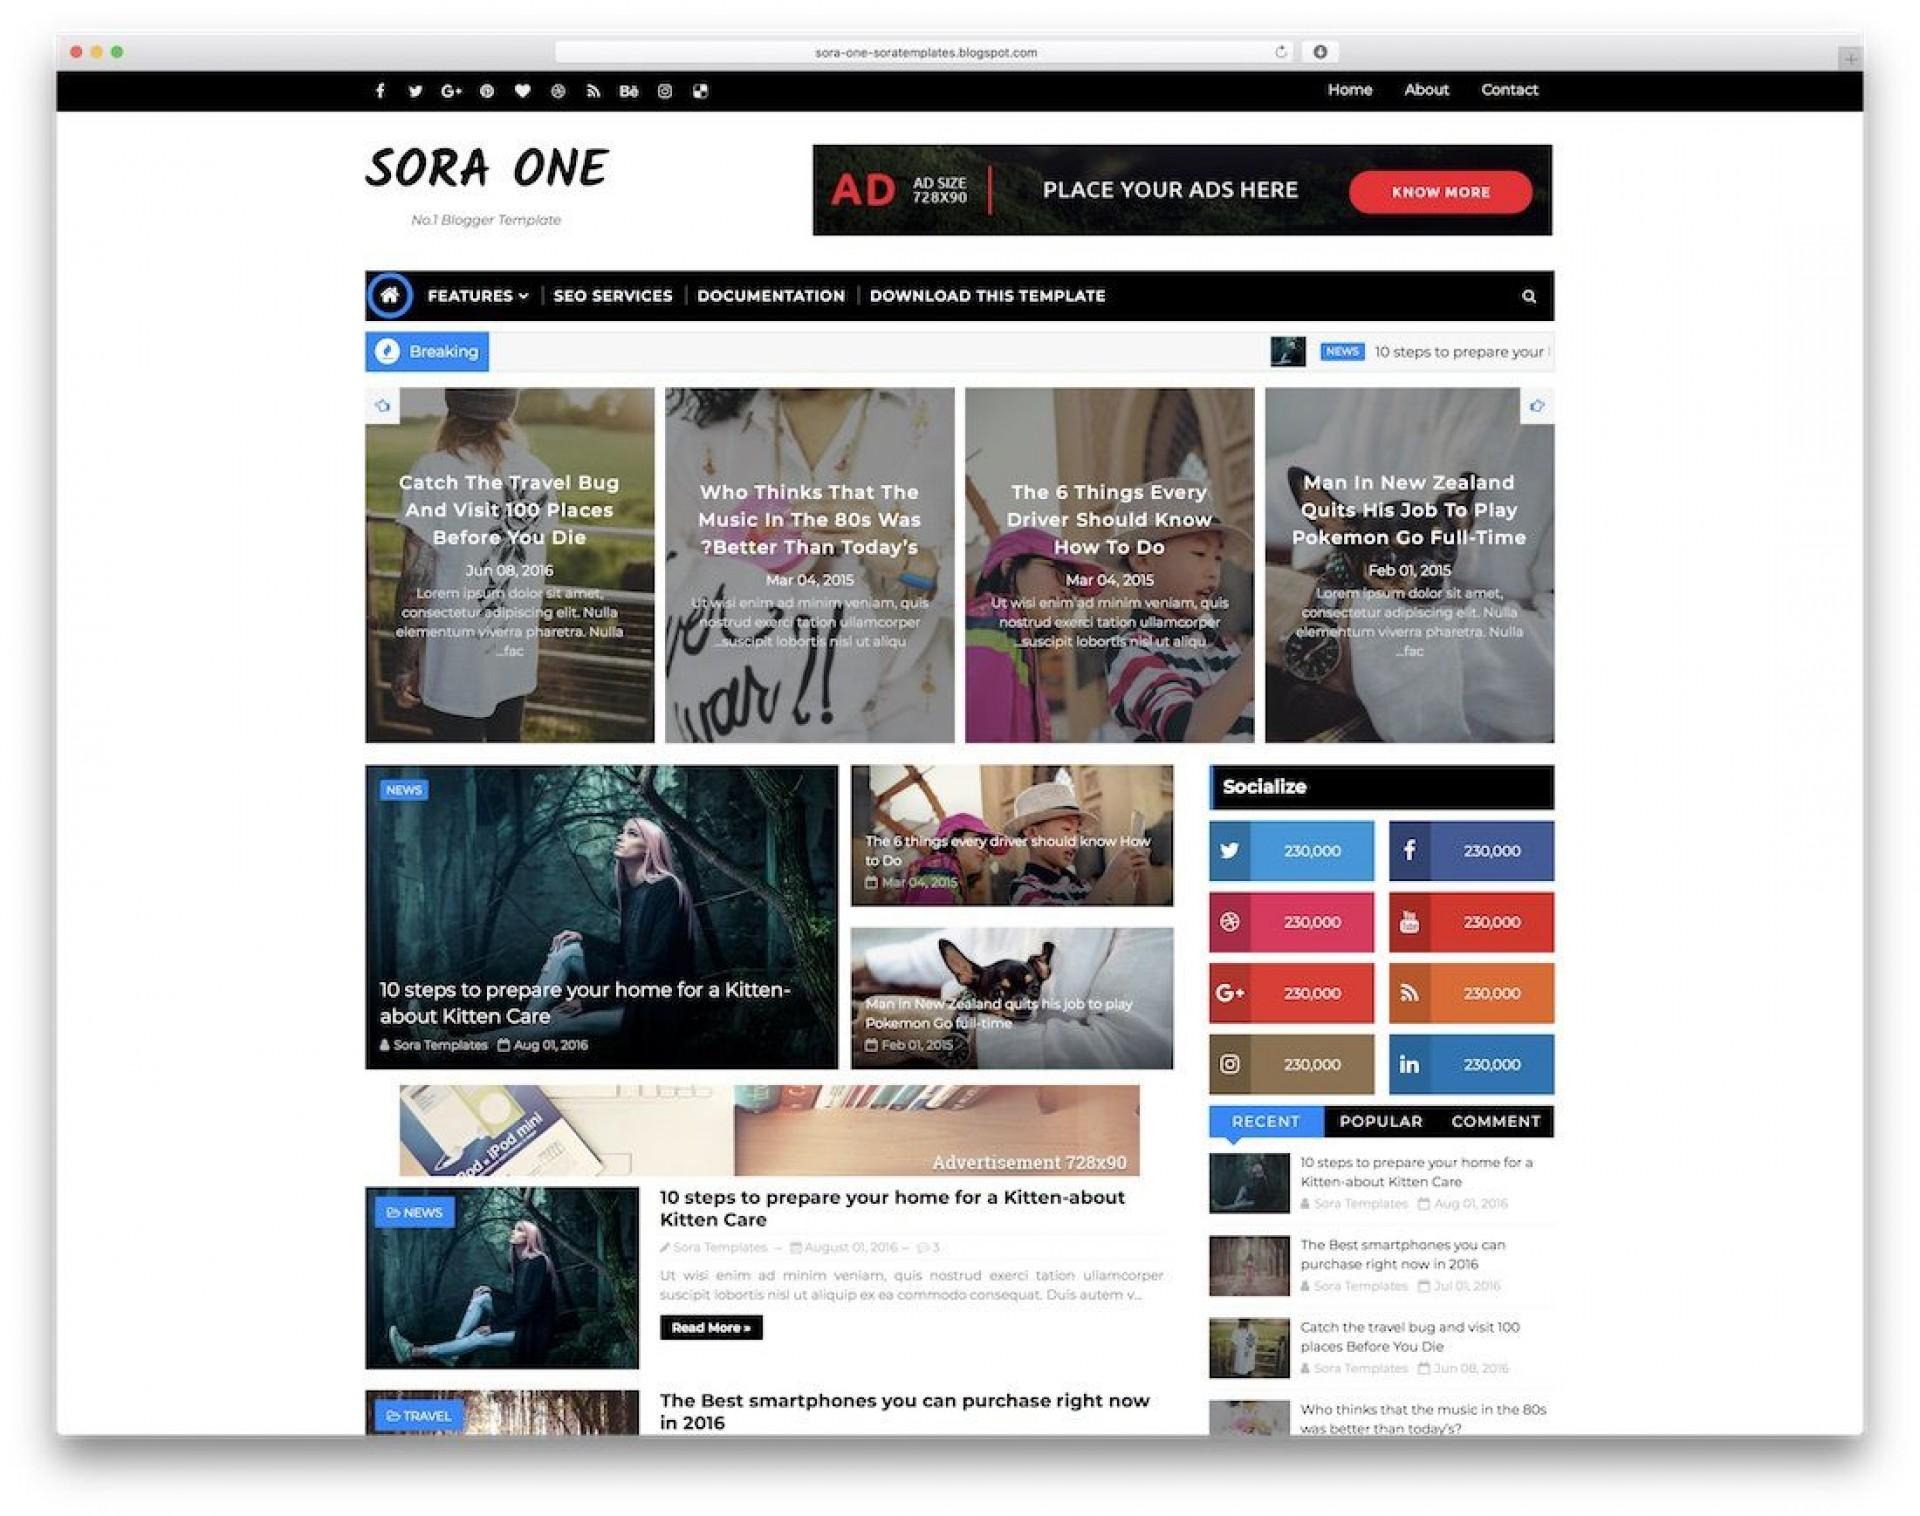 009 Unusual Download Free Responsive Blogger Template Inspiration  Galaxymag - New & Magazine Newspaper Video1920